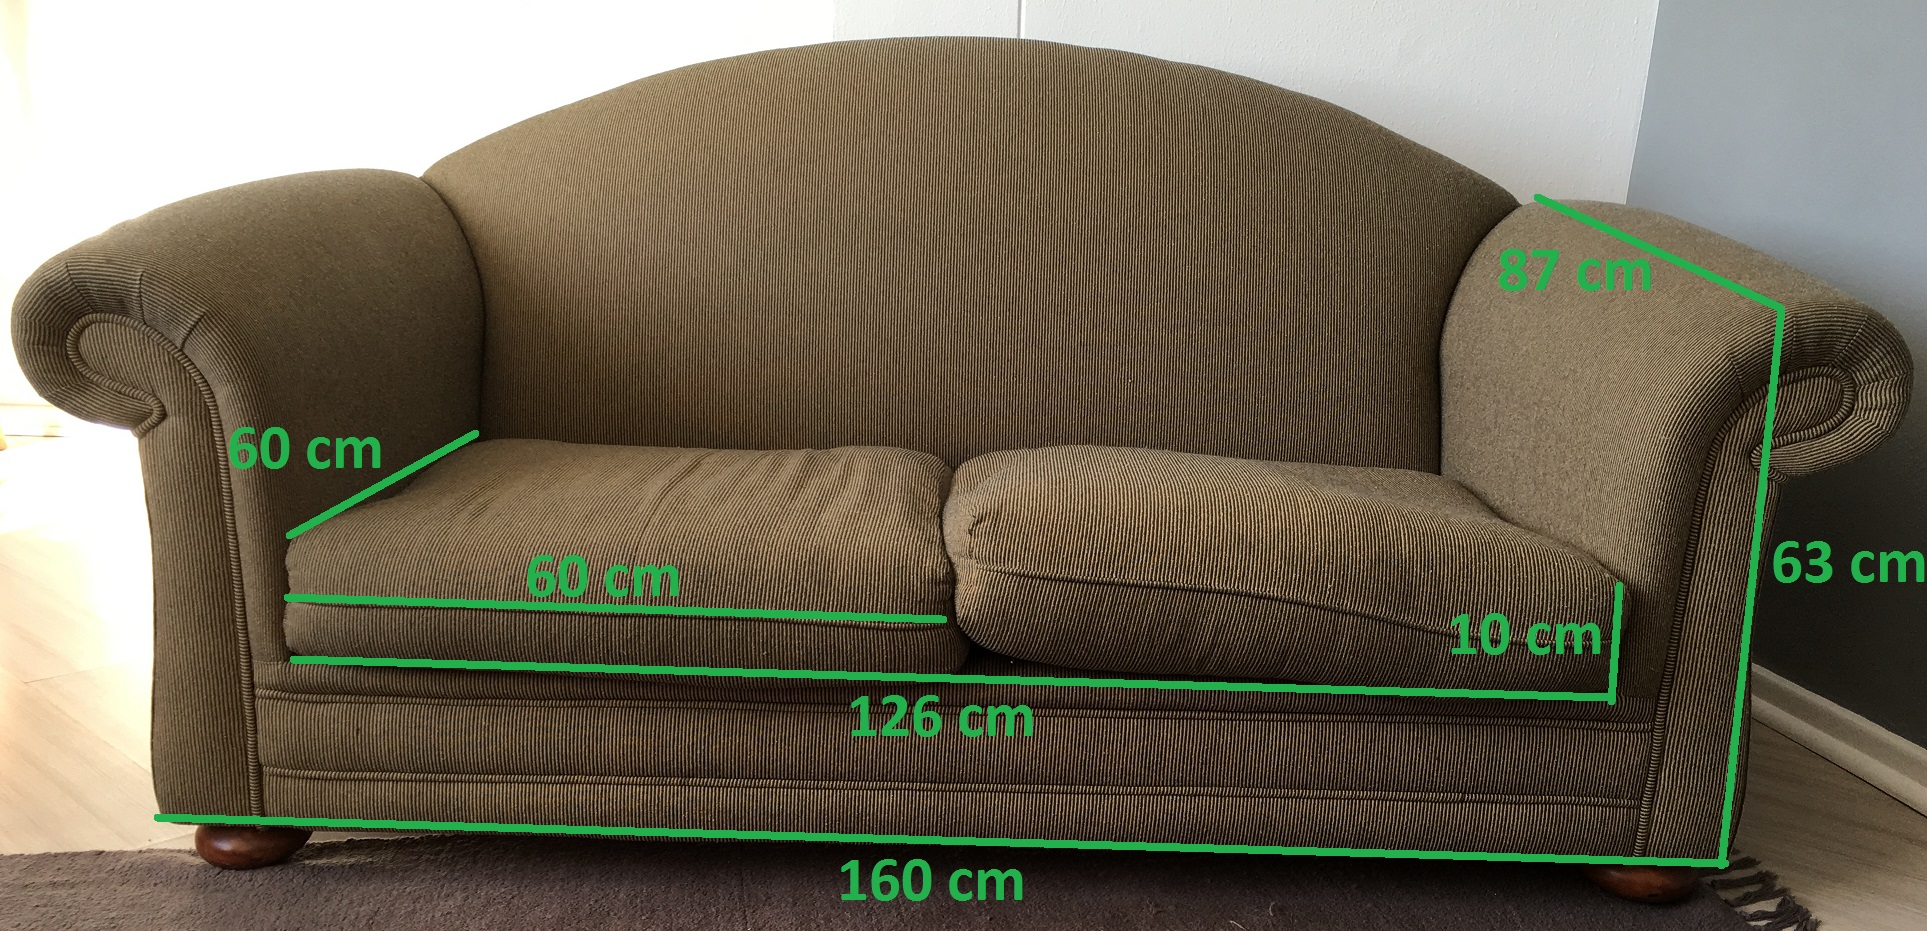 2 Stylish, comfortable couches.